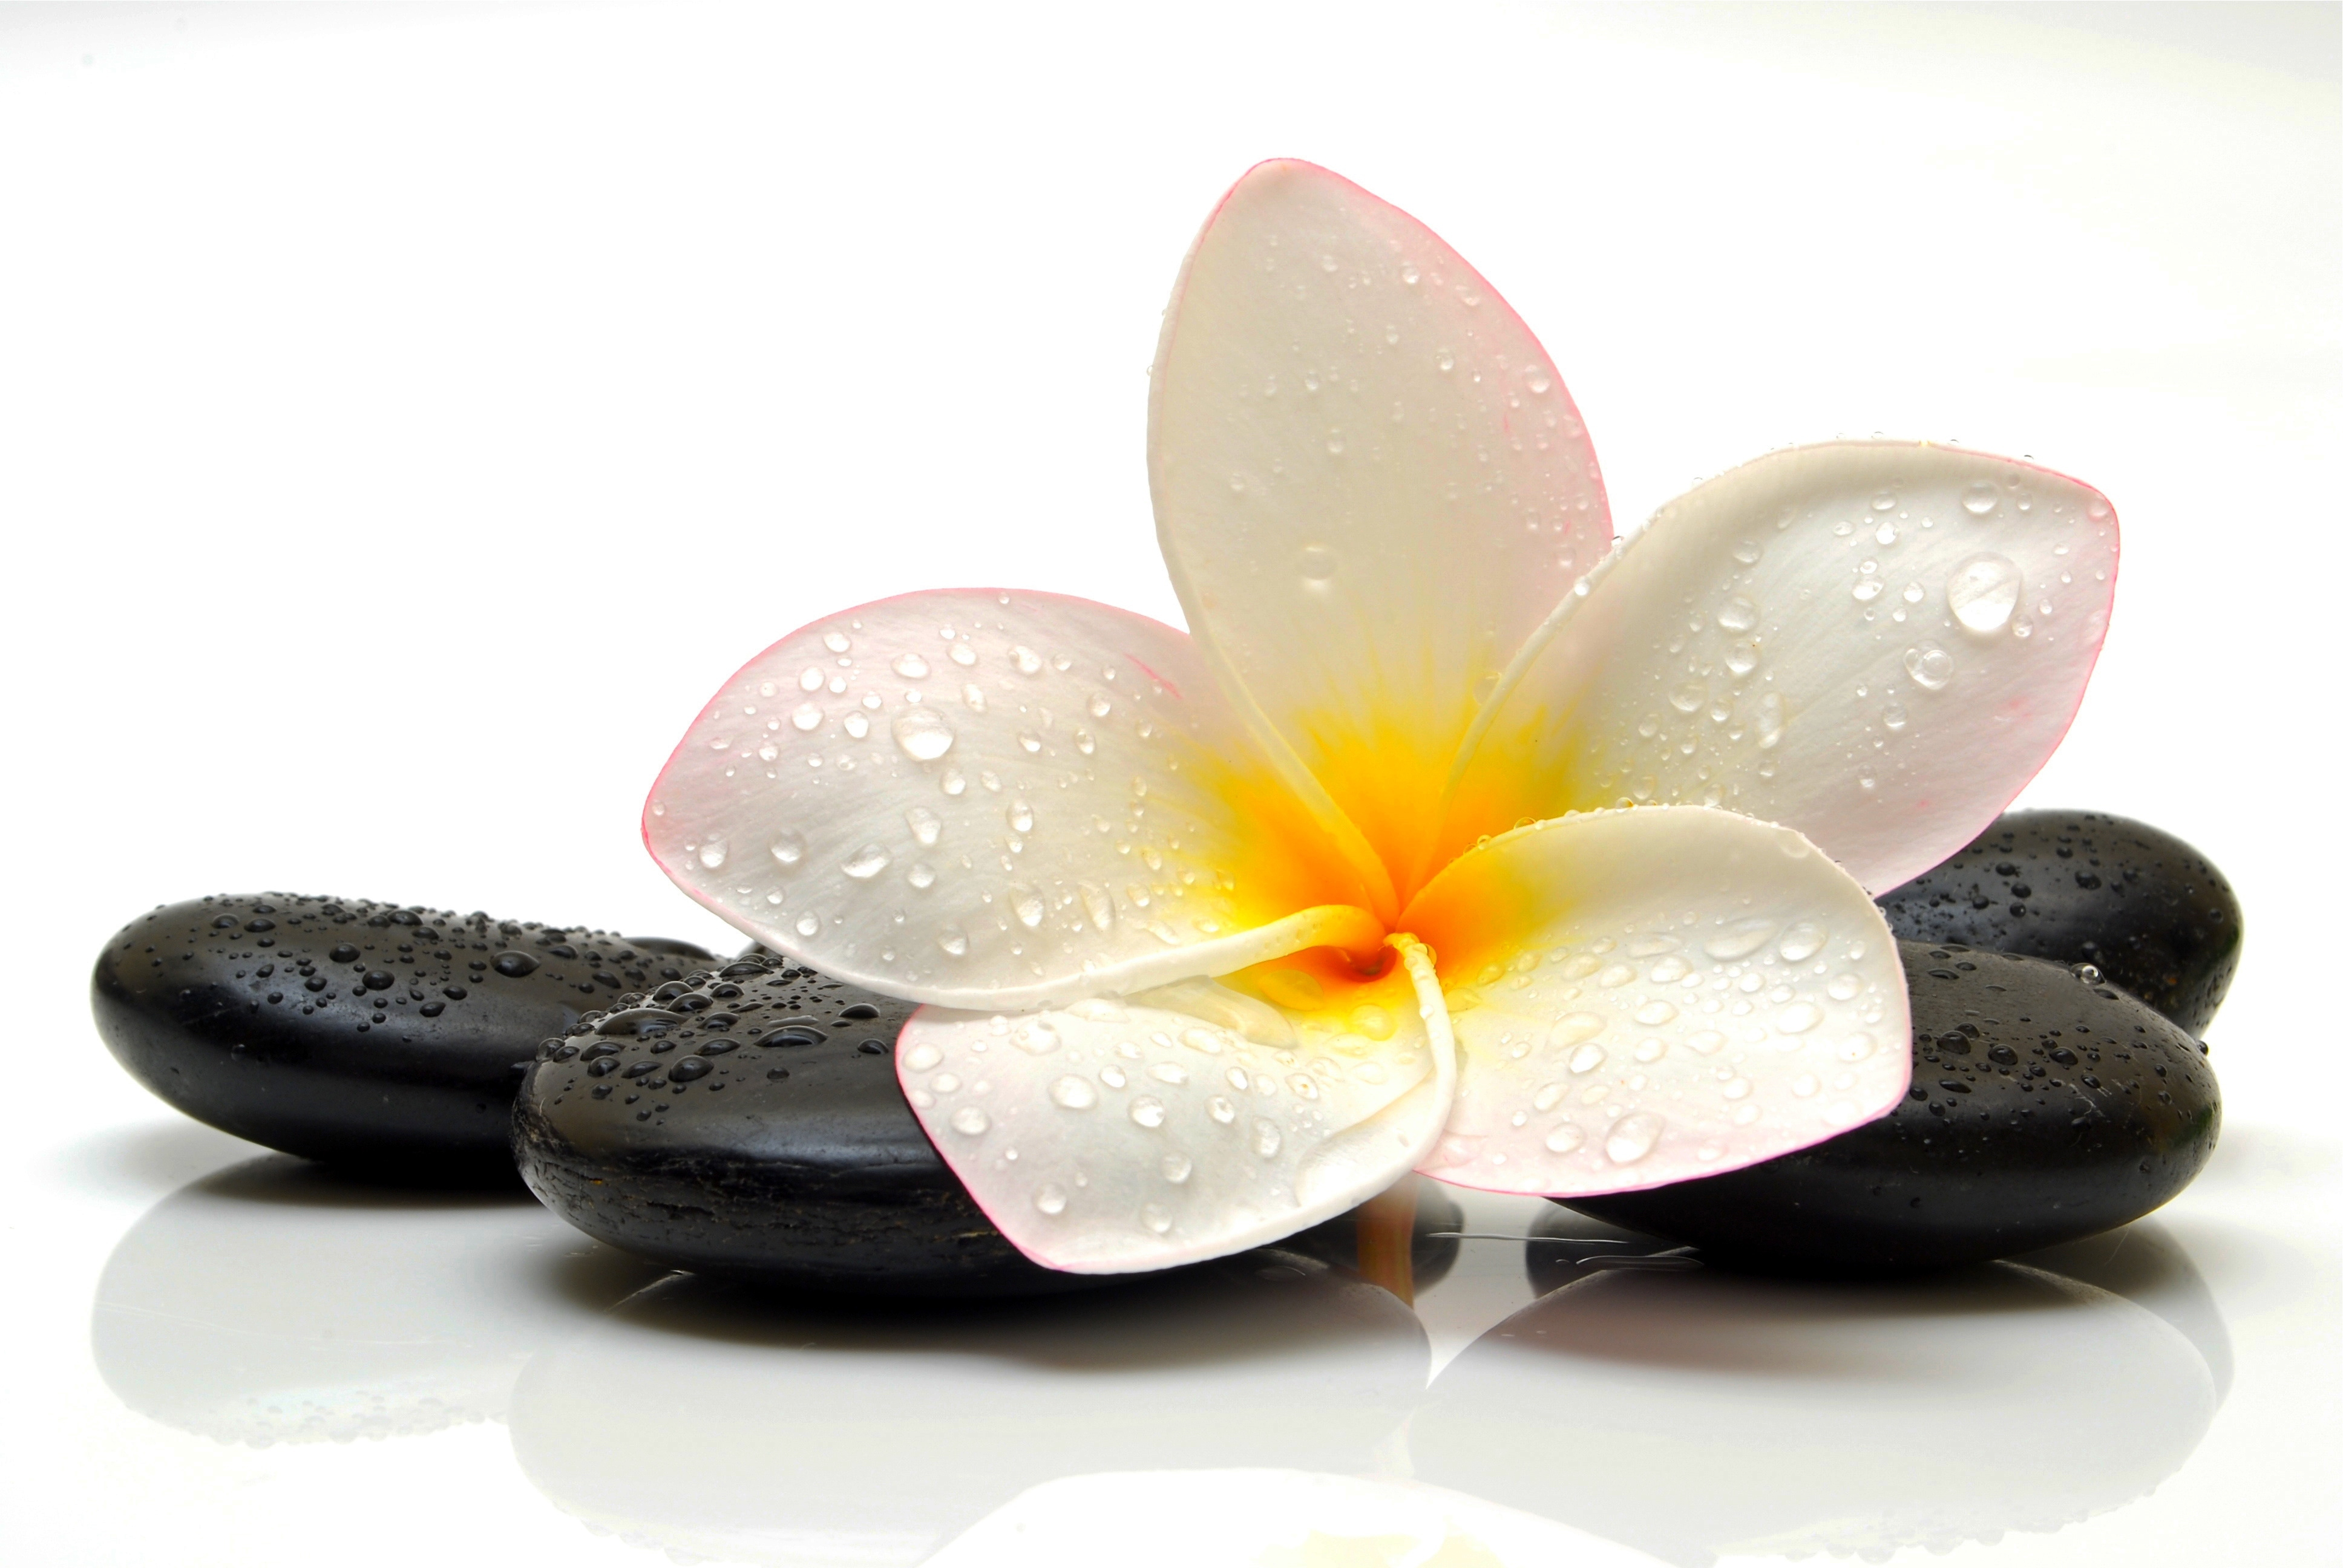 flower spa drops stone plumeria Wallpapers 3872x2592